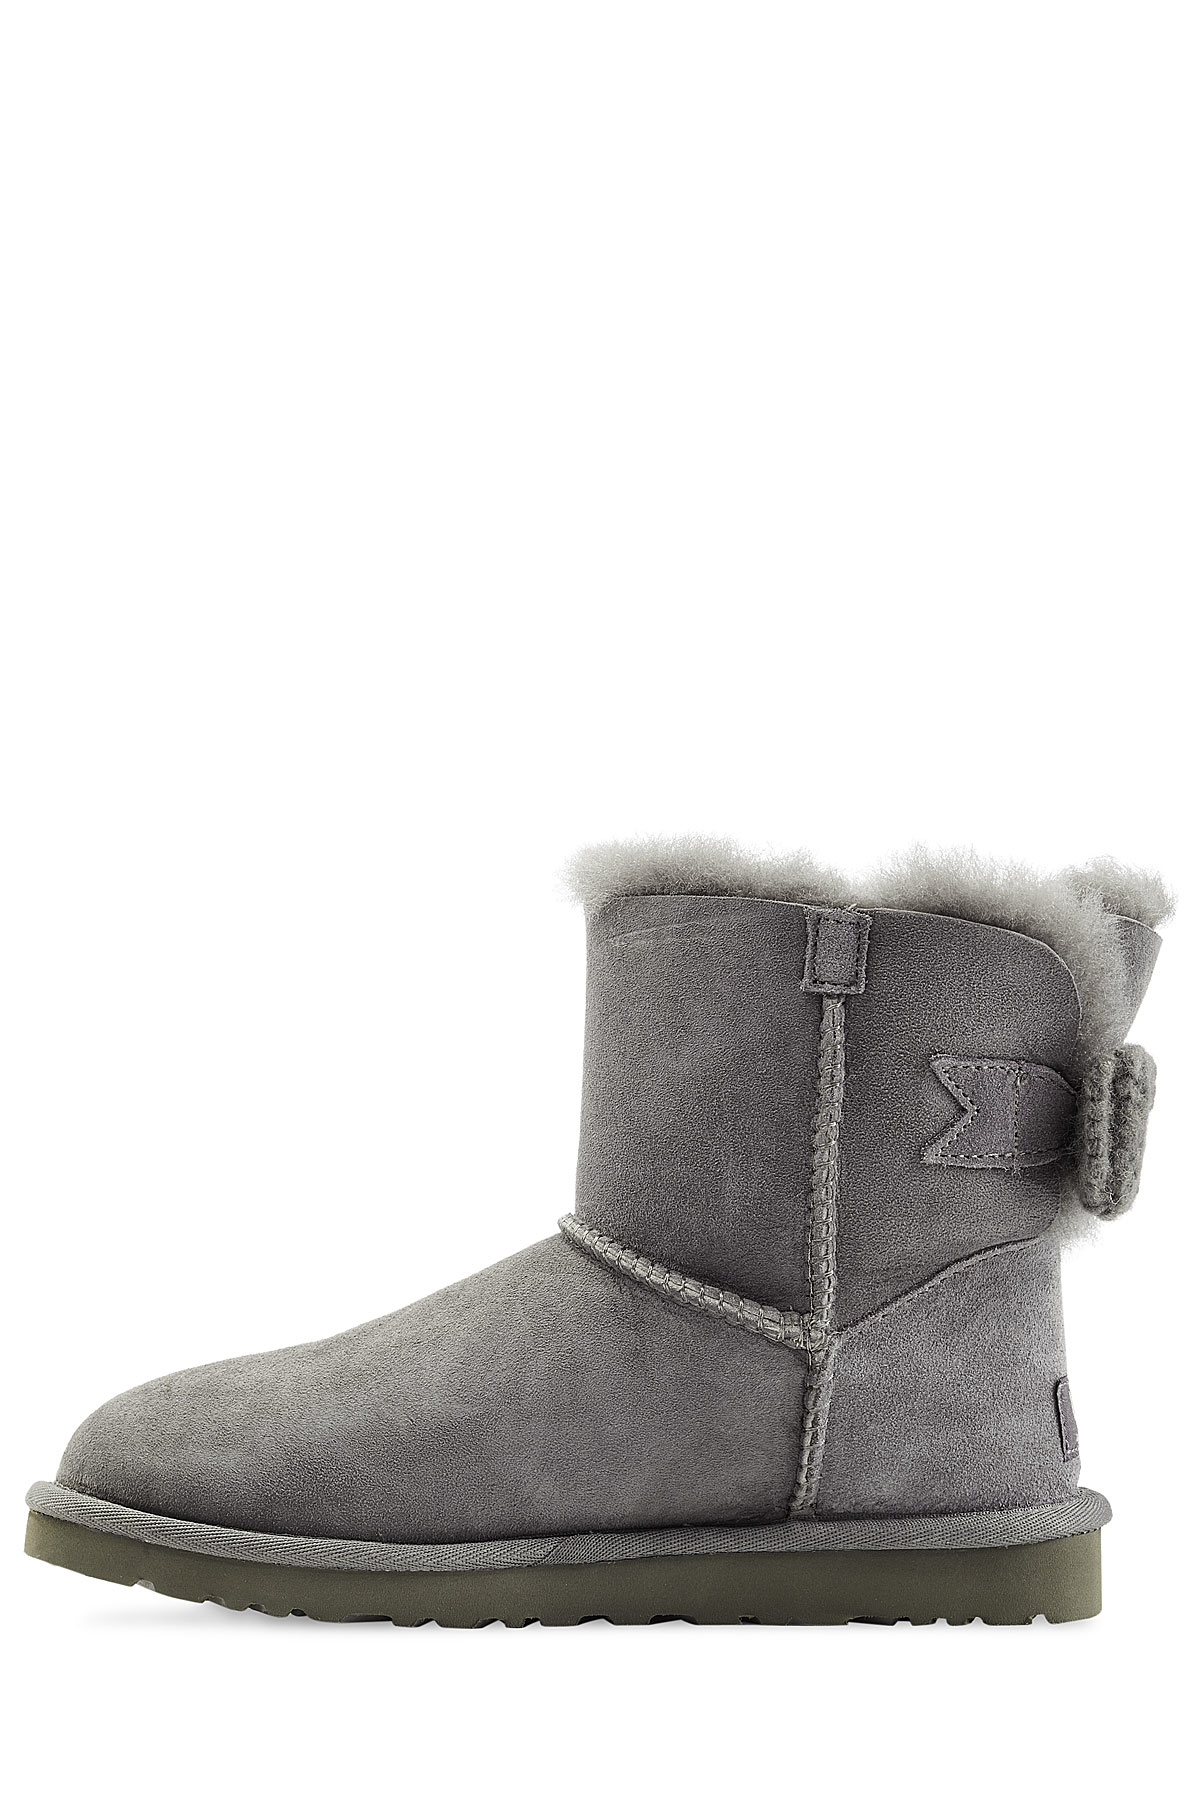 uggs grey knit boots